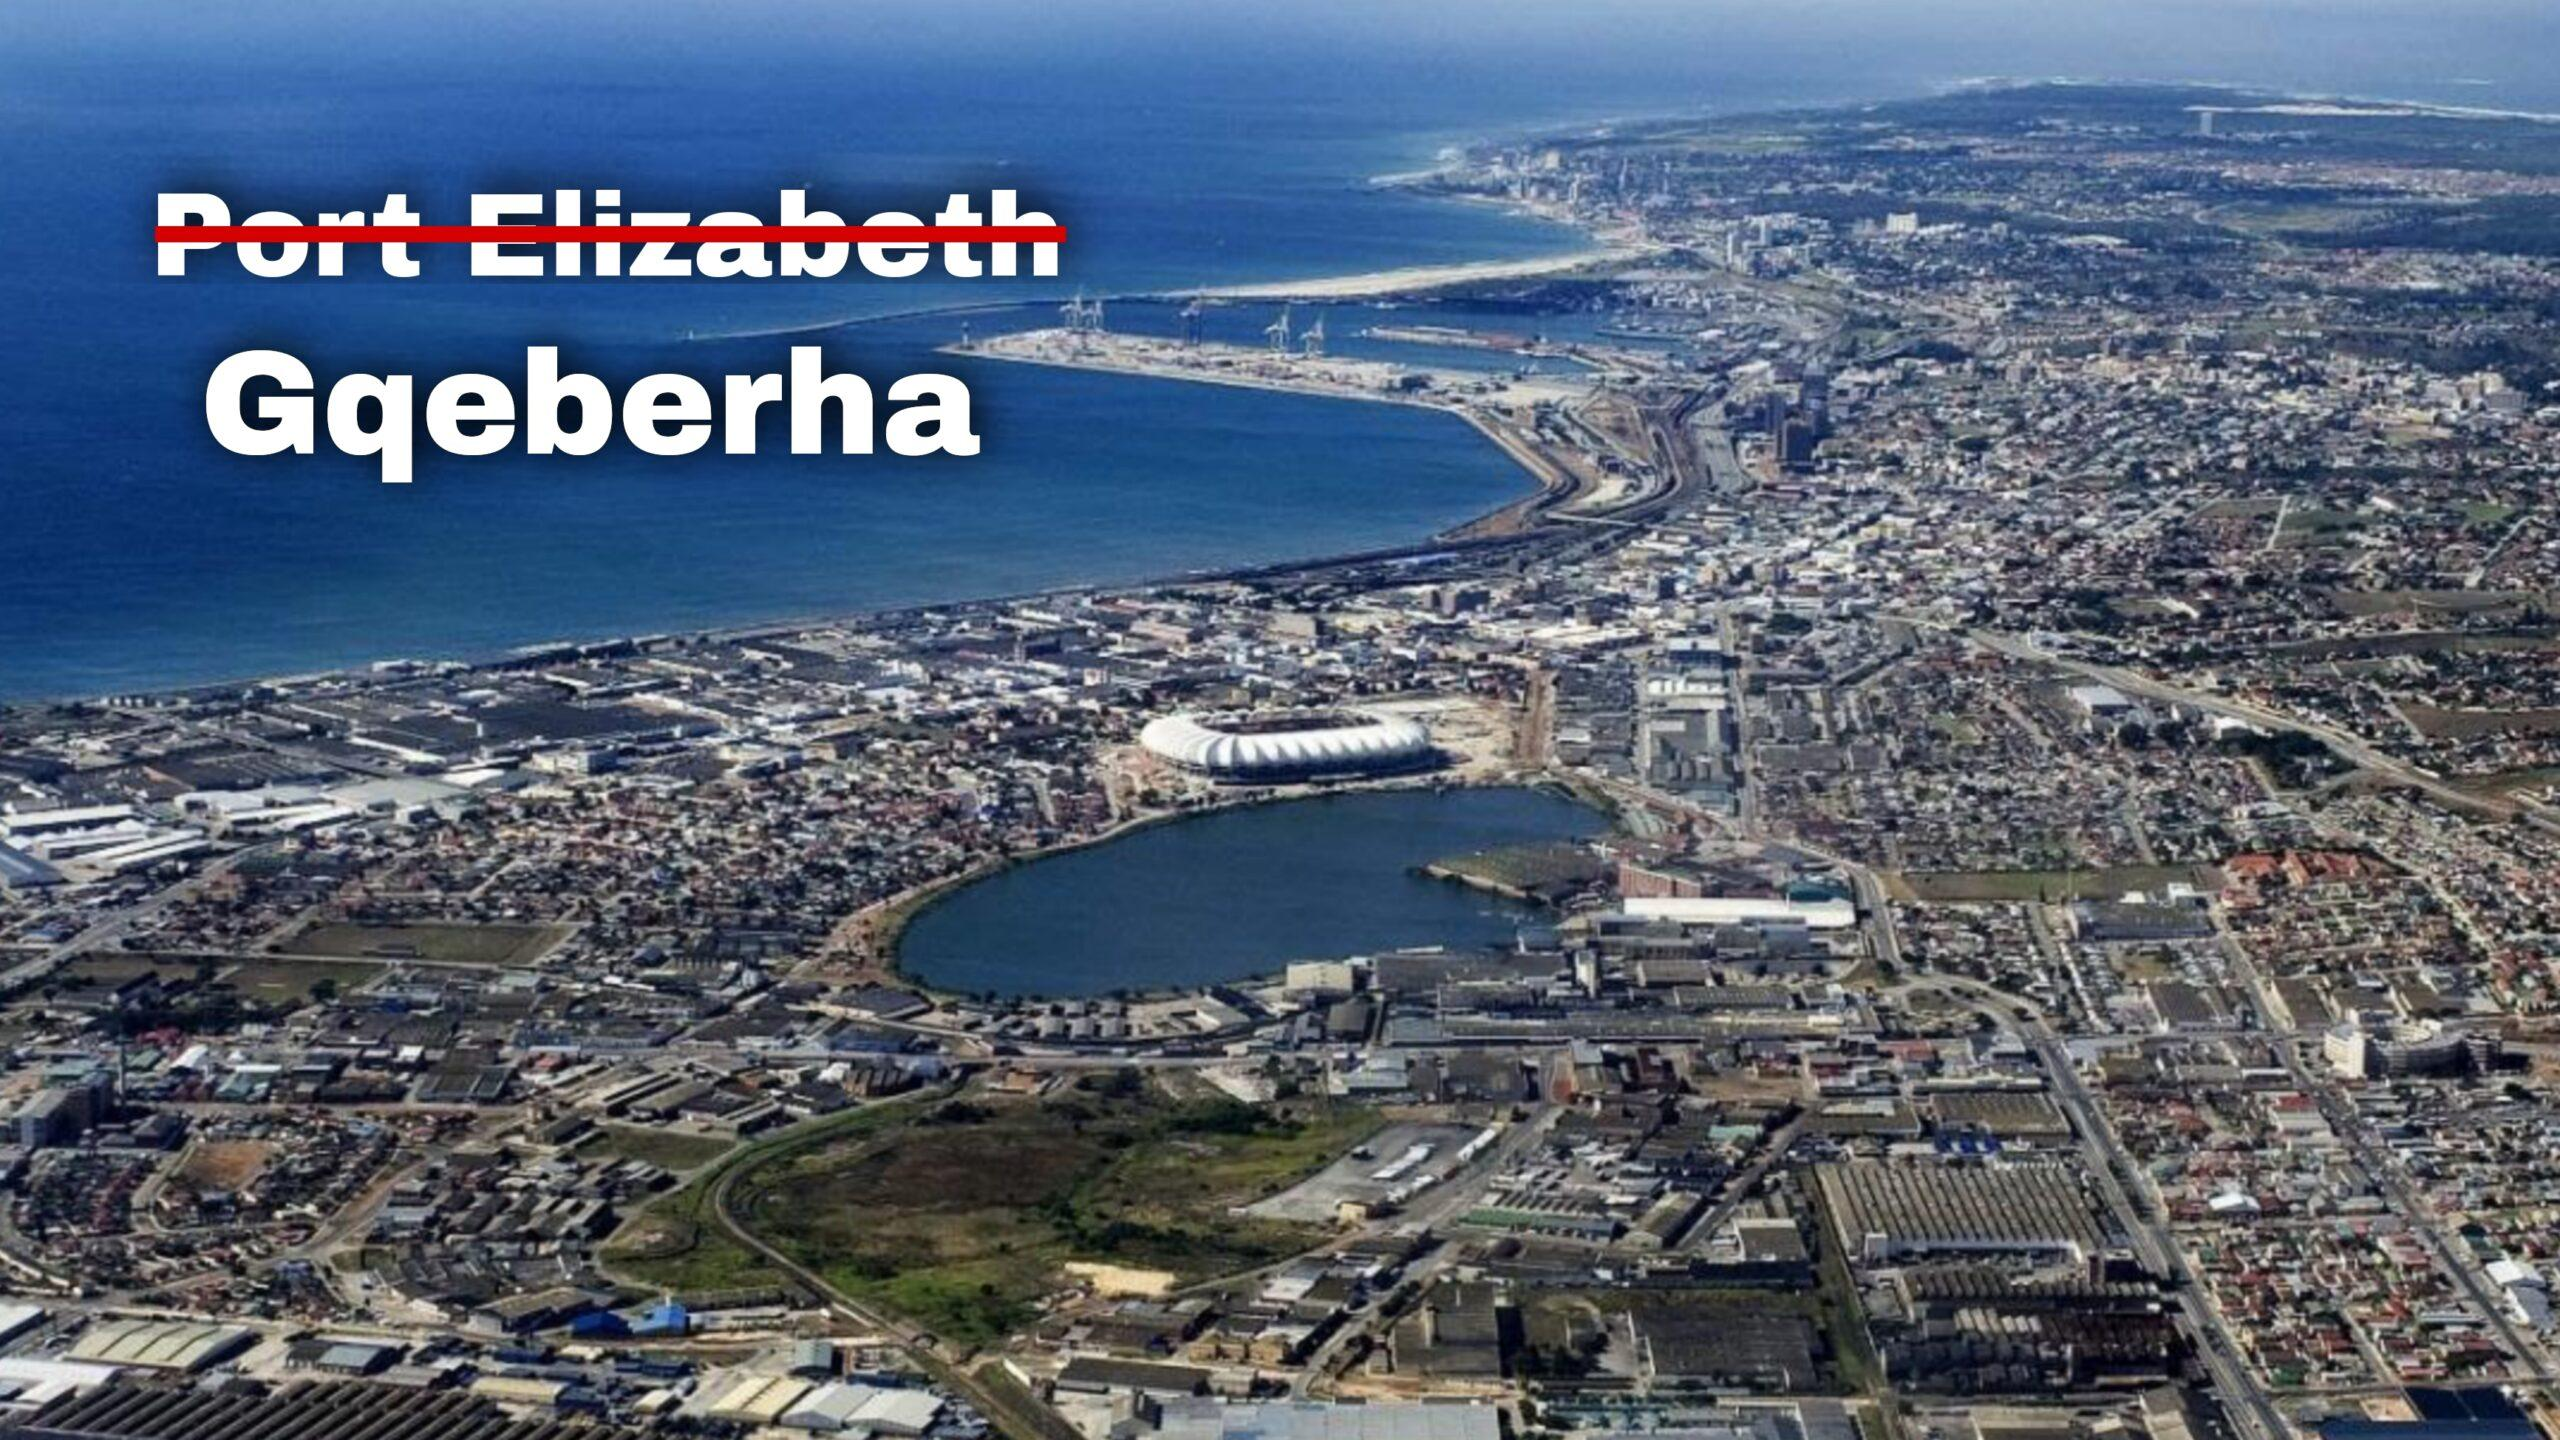 South African cities' colonial names renamed in Xhosa